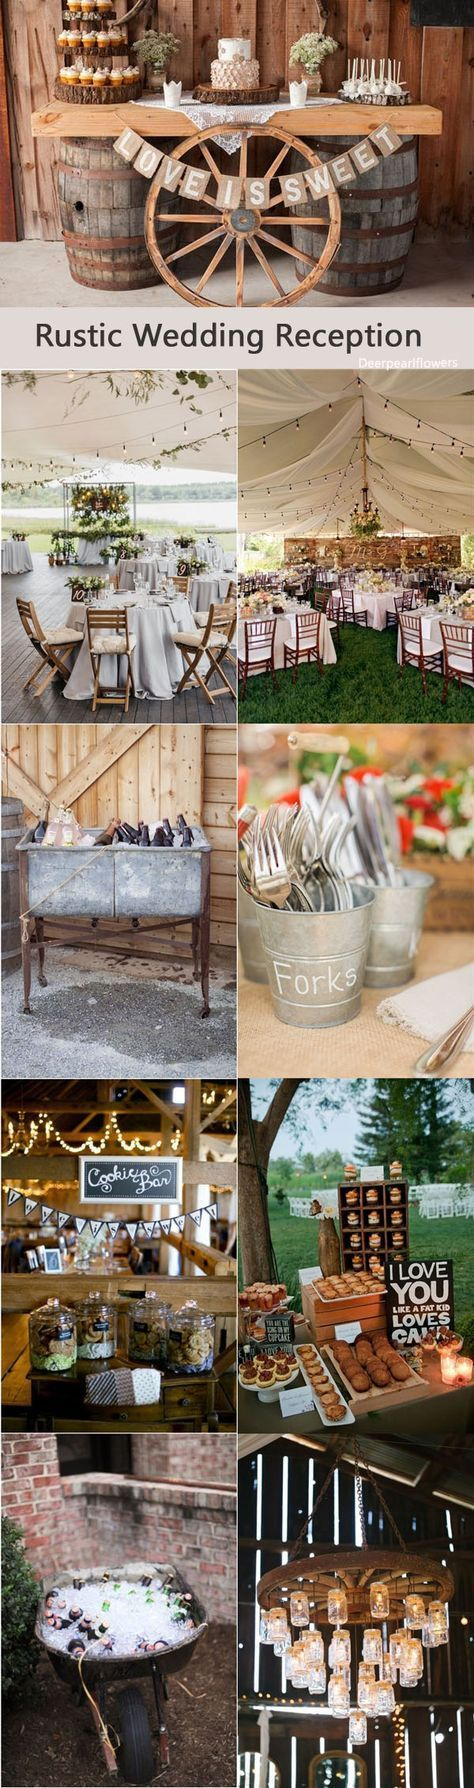 Wedding room decoration ideas 2018   Easy Rustic Wedding Ideas That You Could Try in   Wedding